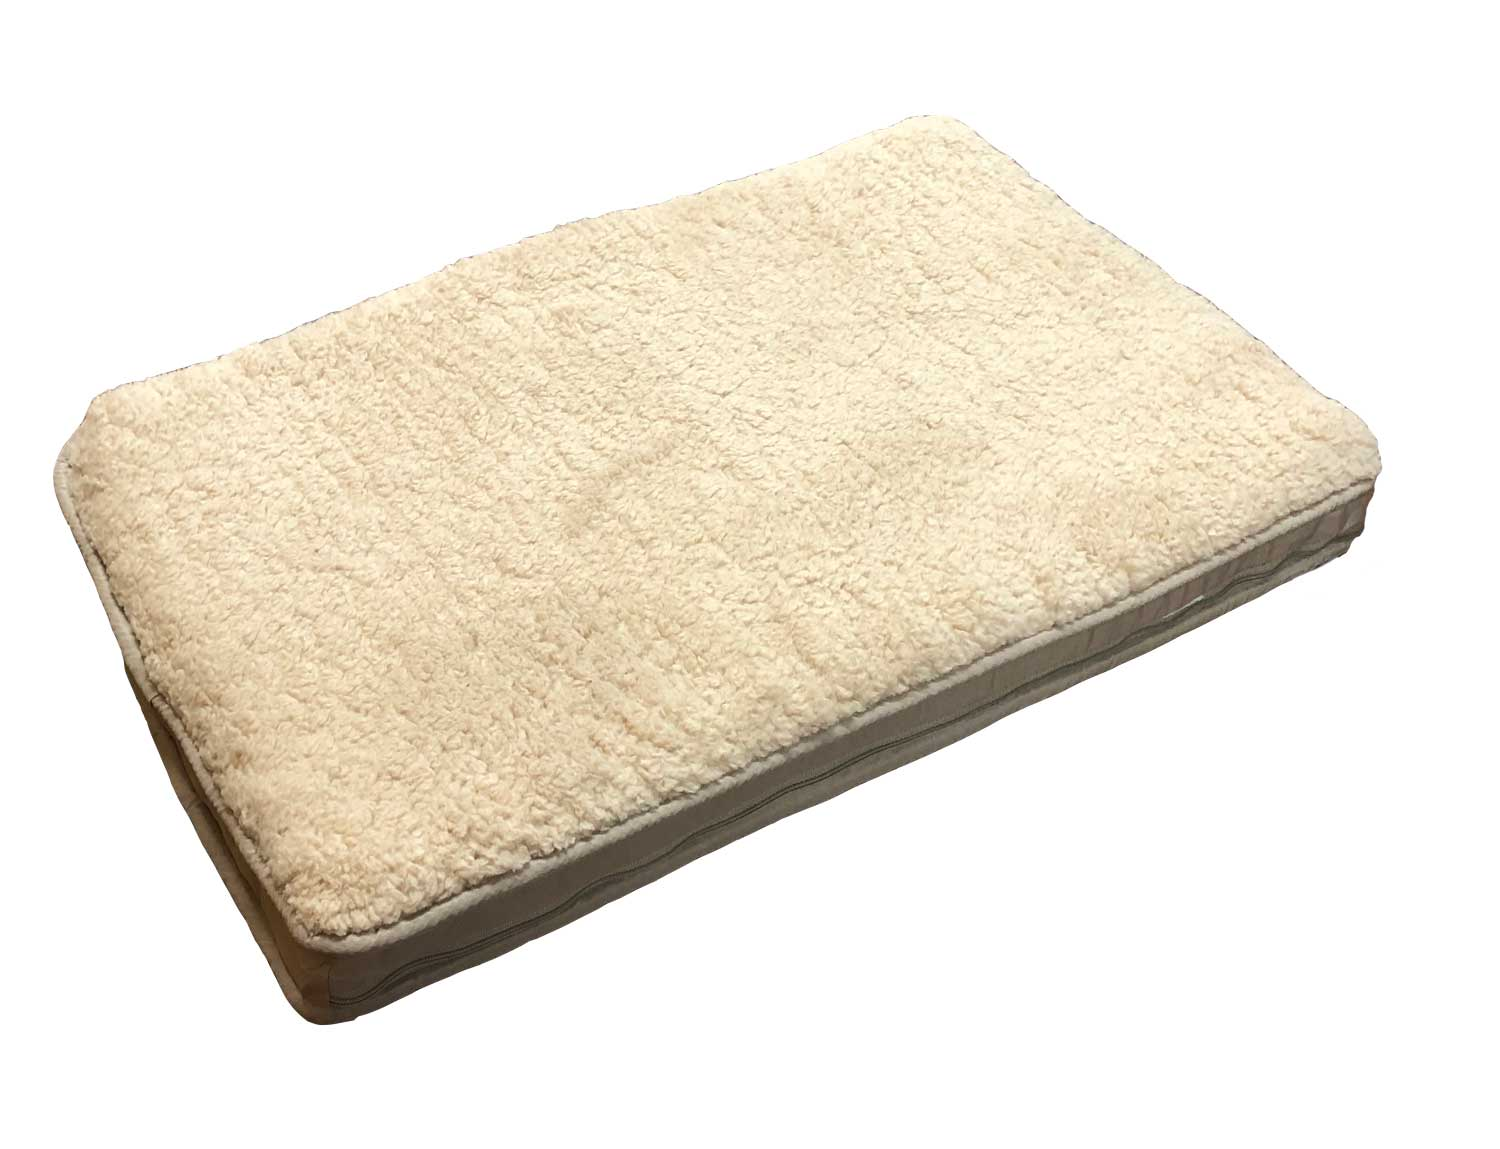 canine-cushion-orthopedic-fleece-dog-bed